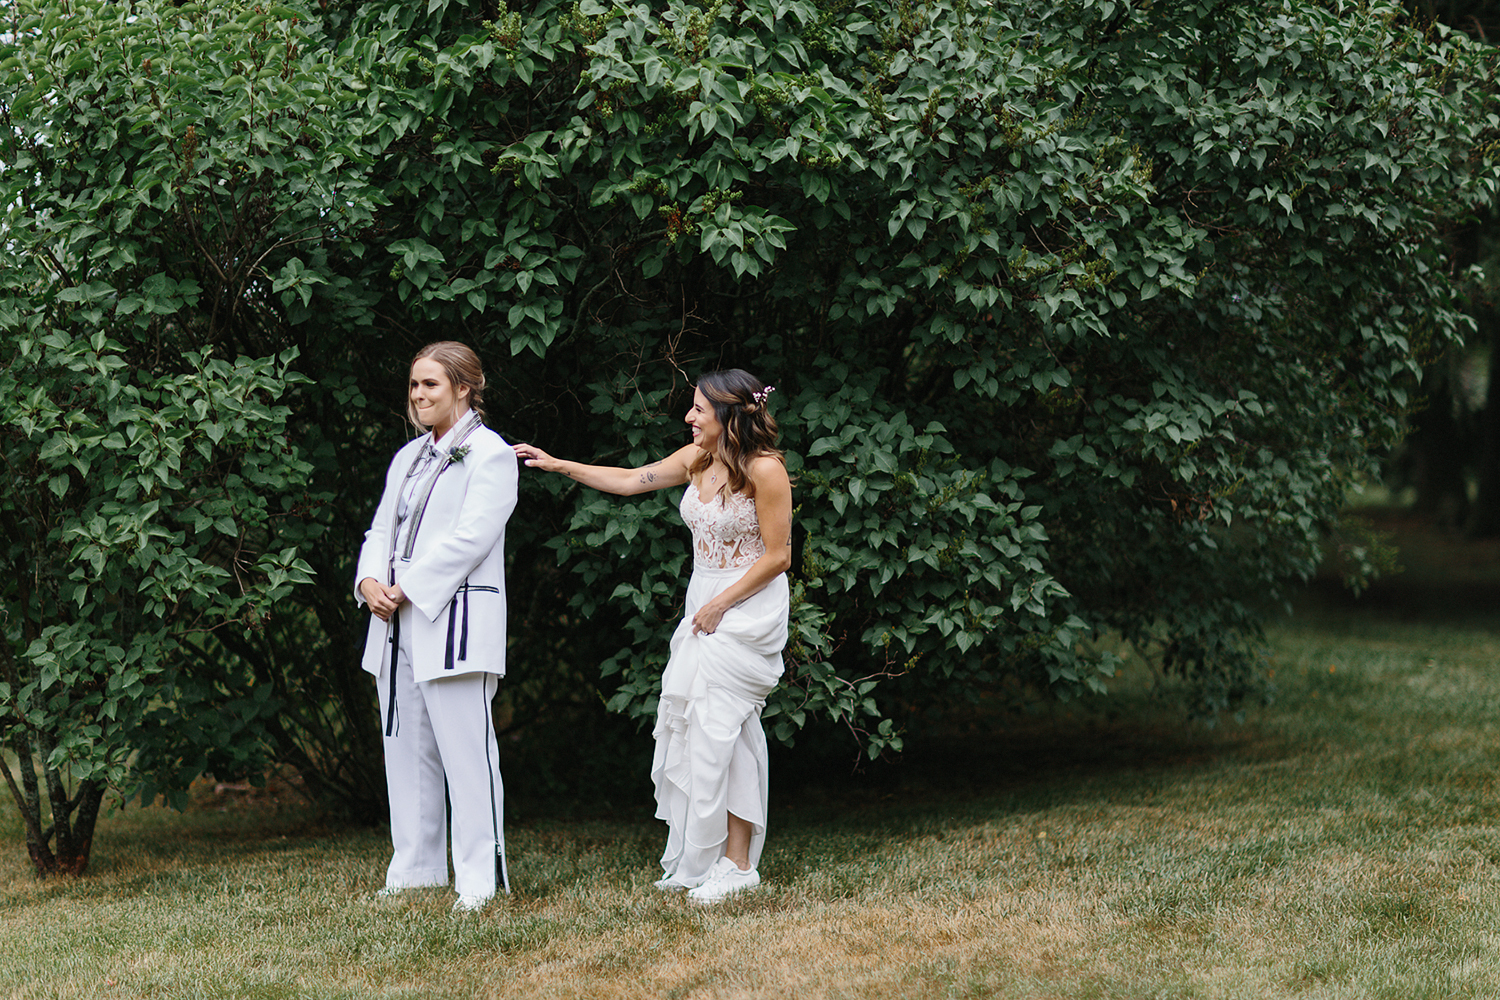 cambium-farms-wedding-toronto-wedding-photographer-ryanne-hollies-photography-gay-wedding-farm-wedding-inspiriration-candid-documetary-tattooed-bride-portrait-first-look-waiting-anticipation-real-life.jpg